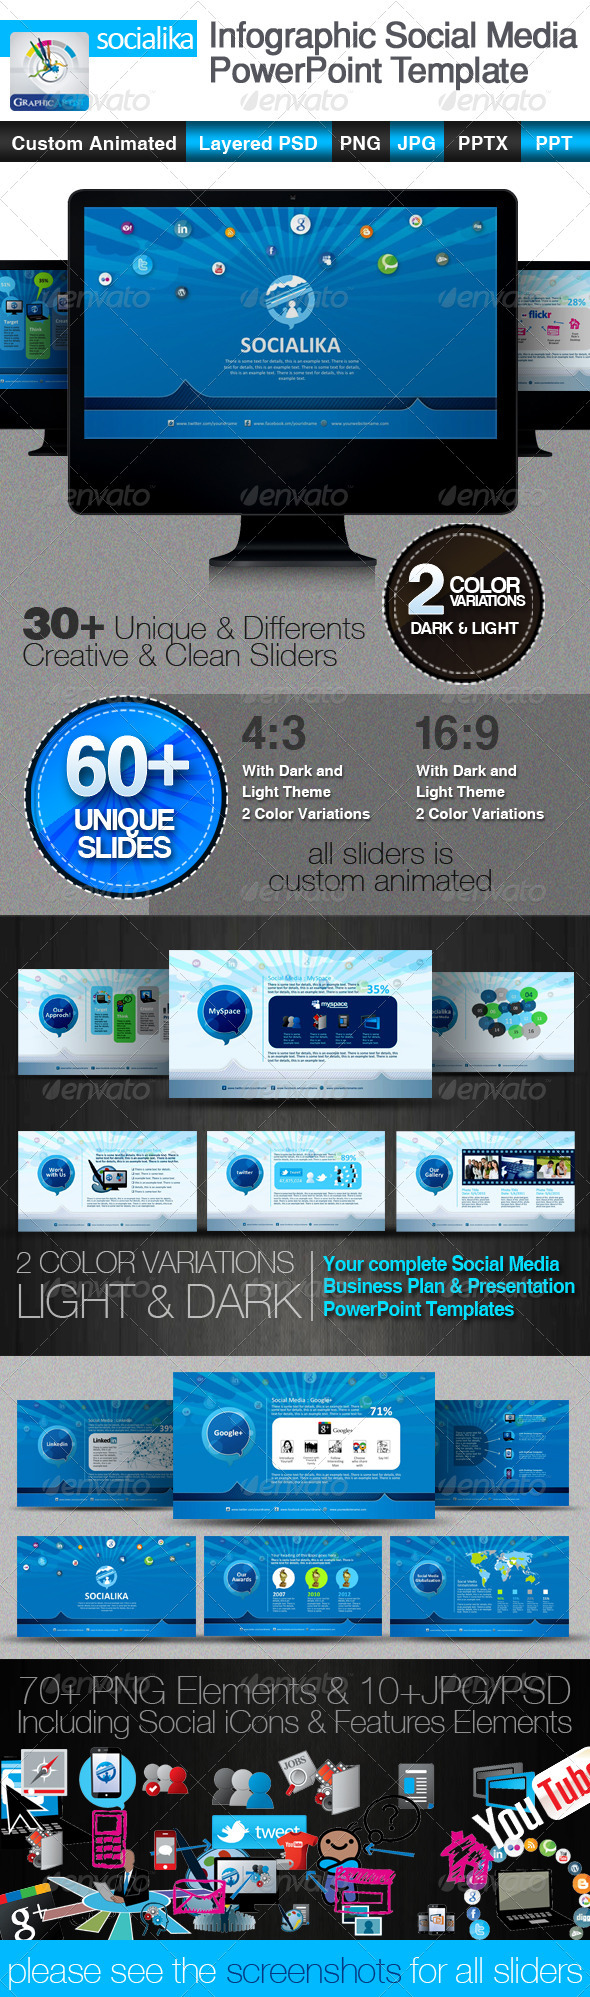 GraphicRiver Socialika Infographic Social Media PowerPoint 2716706